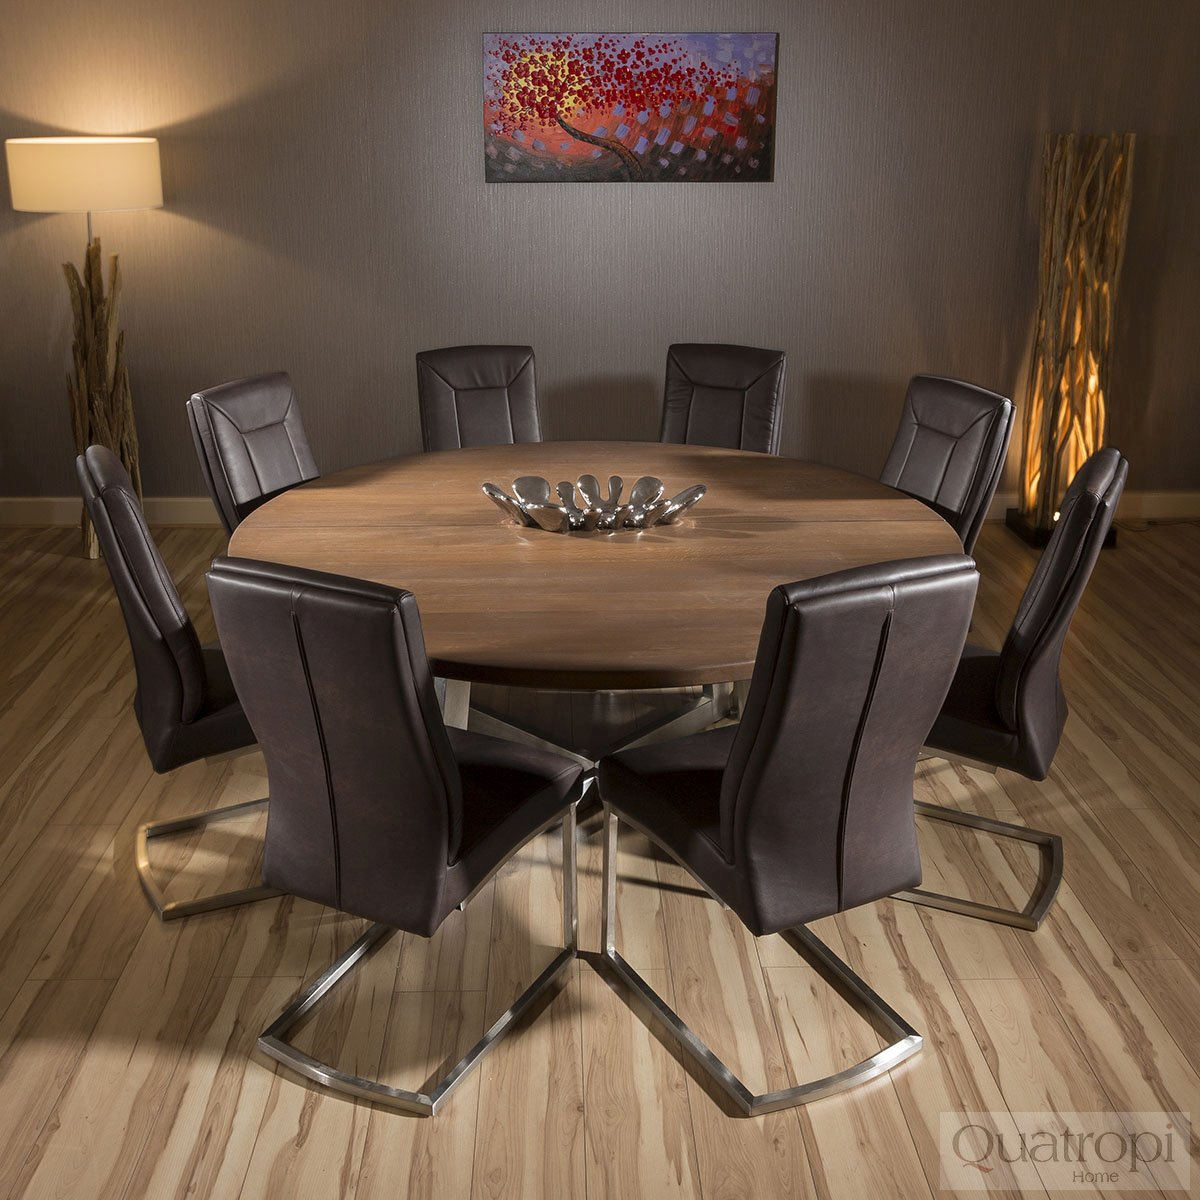 Round Comfy Chair Large Round 1 8mtr Dark Brown Oak Dining Table 43 8 Comfy